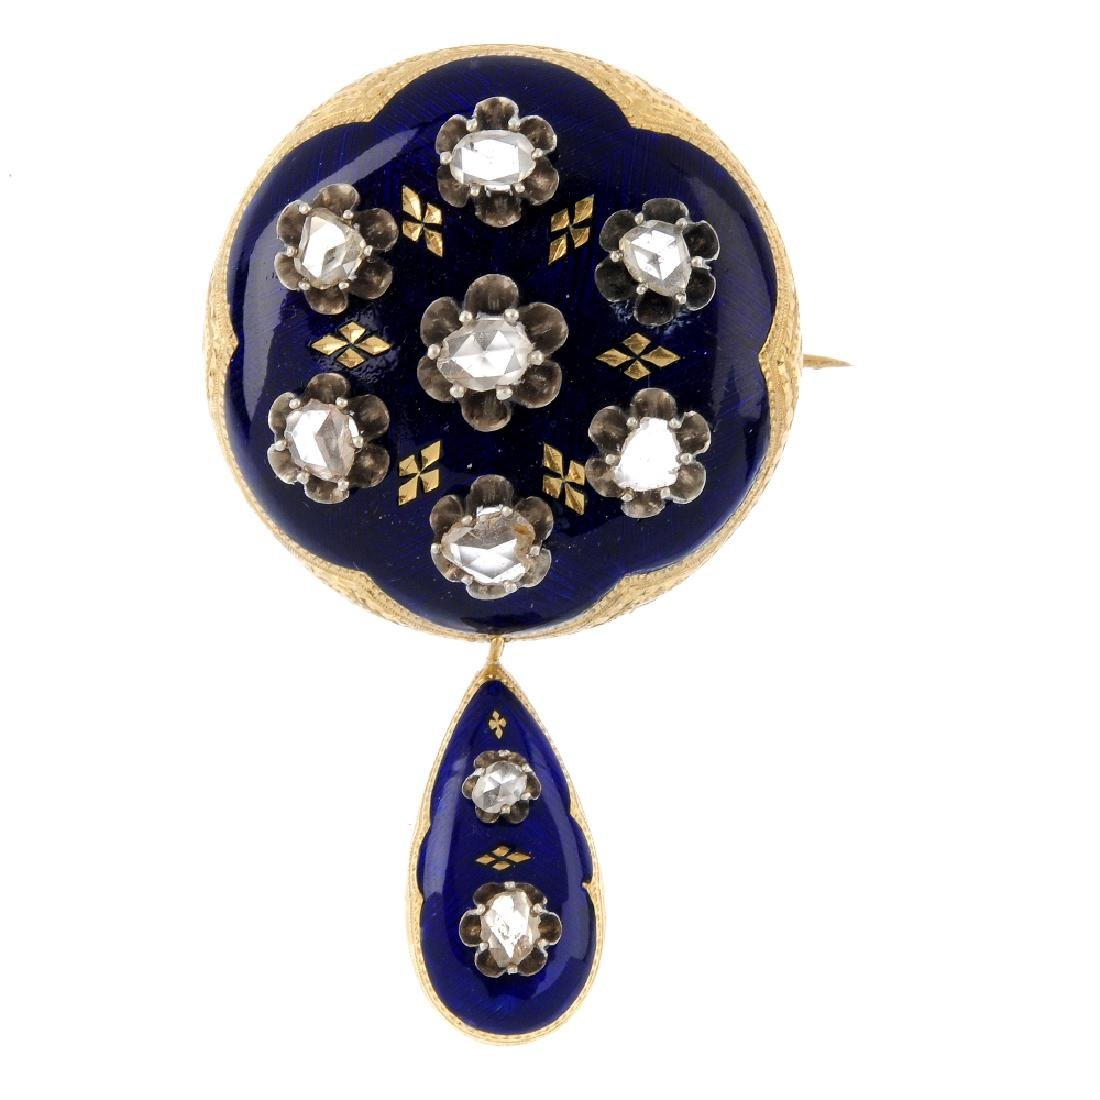 A late Victorian diamond and enamel brooch. The